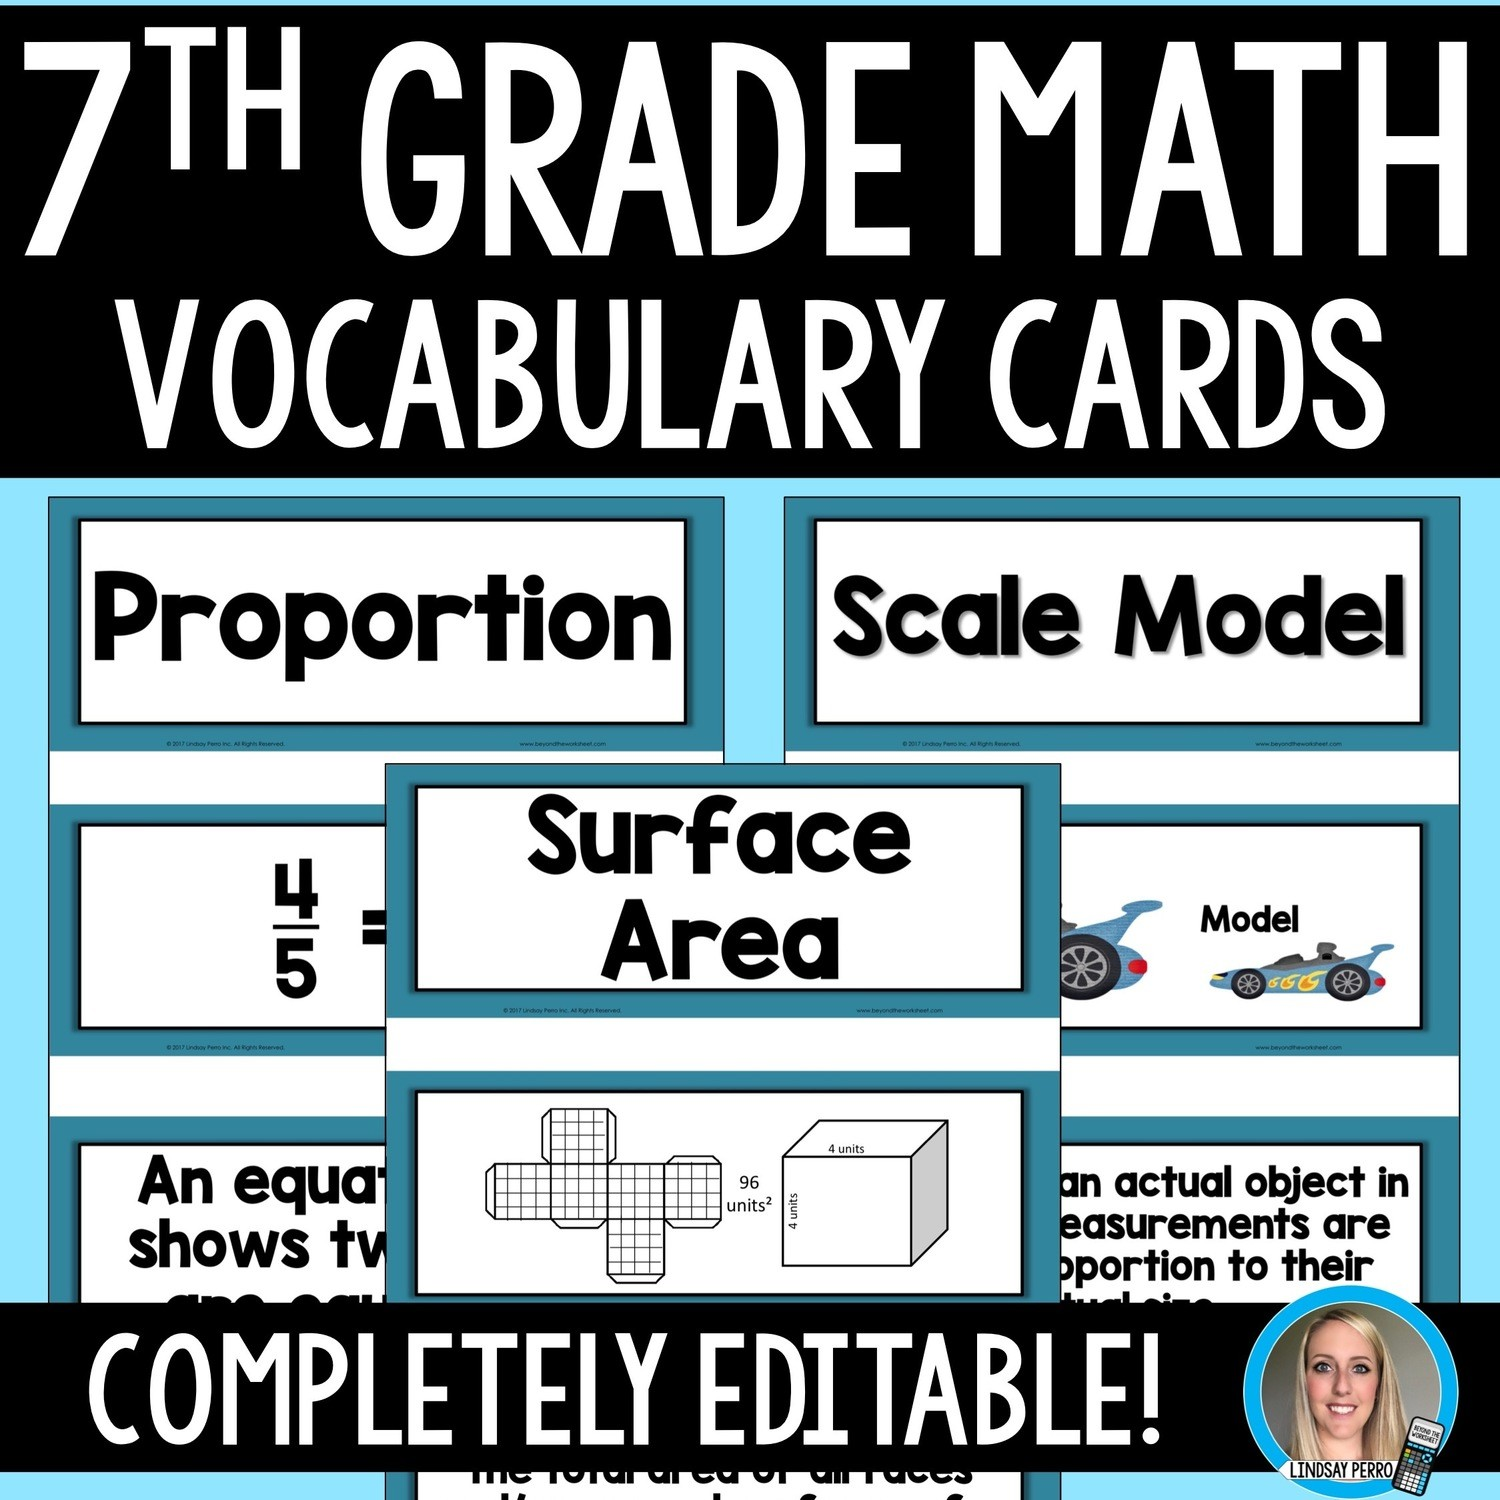 7th Grade Math Vocabulary Cards   Store - Lindsay Perro [ 1200 x 1200 Pixel ]